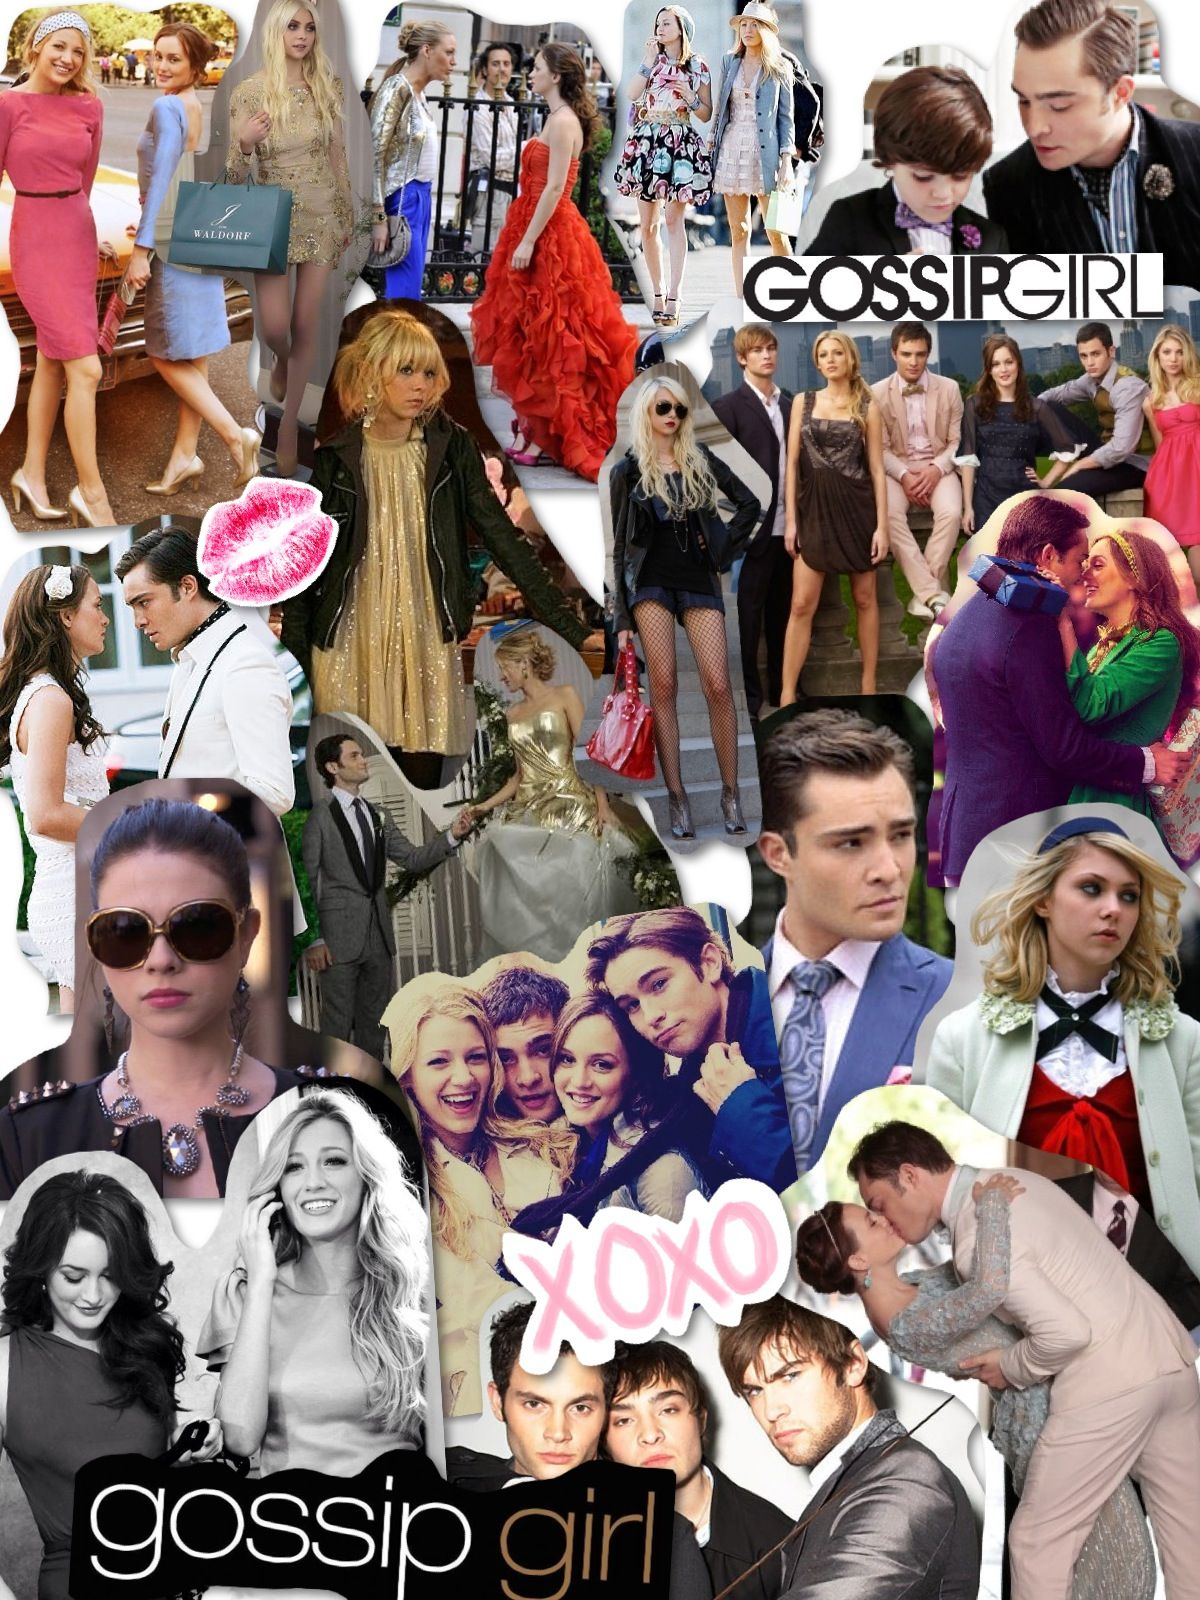 XOXO, Gossip Girl. love this collage props to whoever made ...